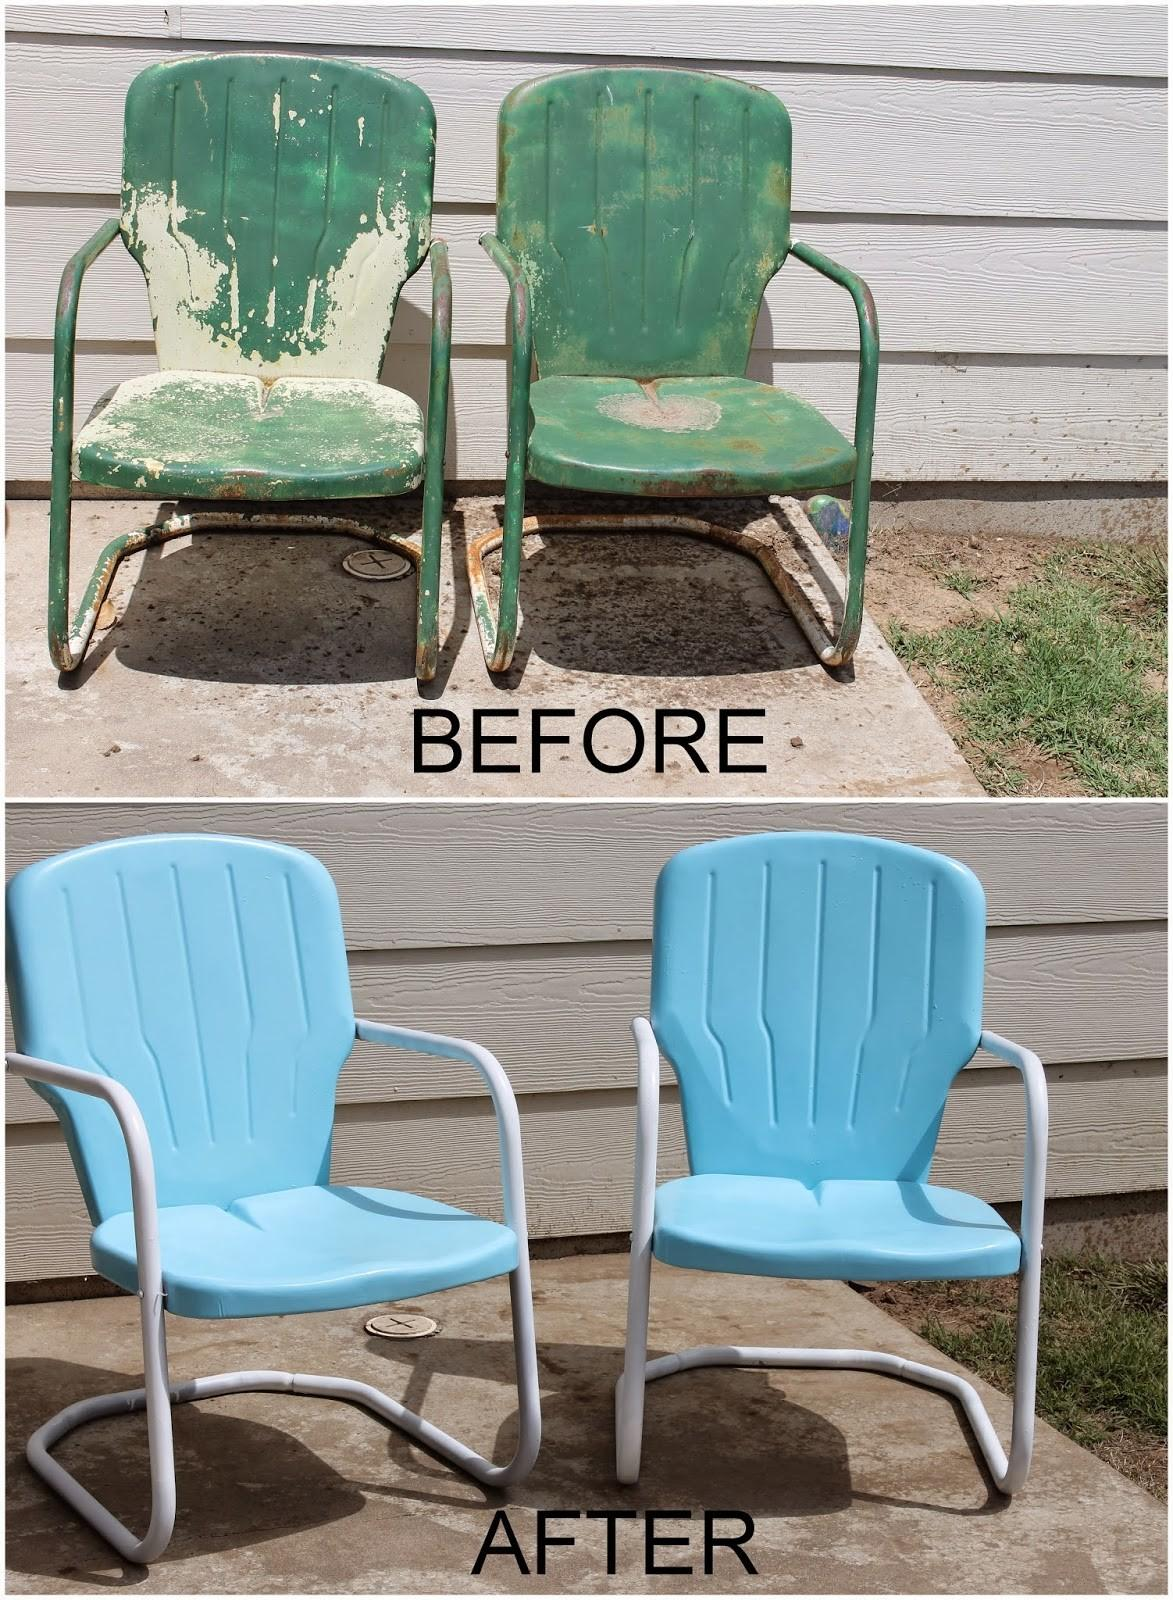 Repaint Old Metal Patio Chairs Diy Paint Outdoor